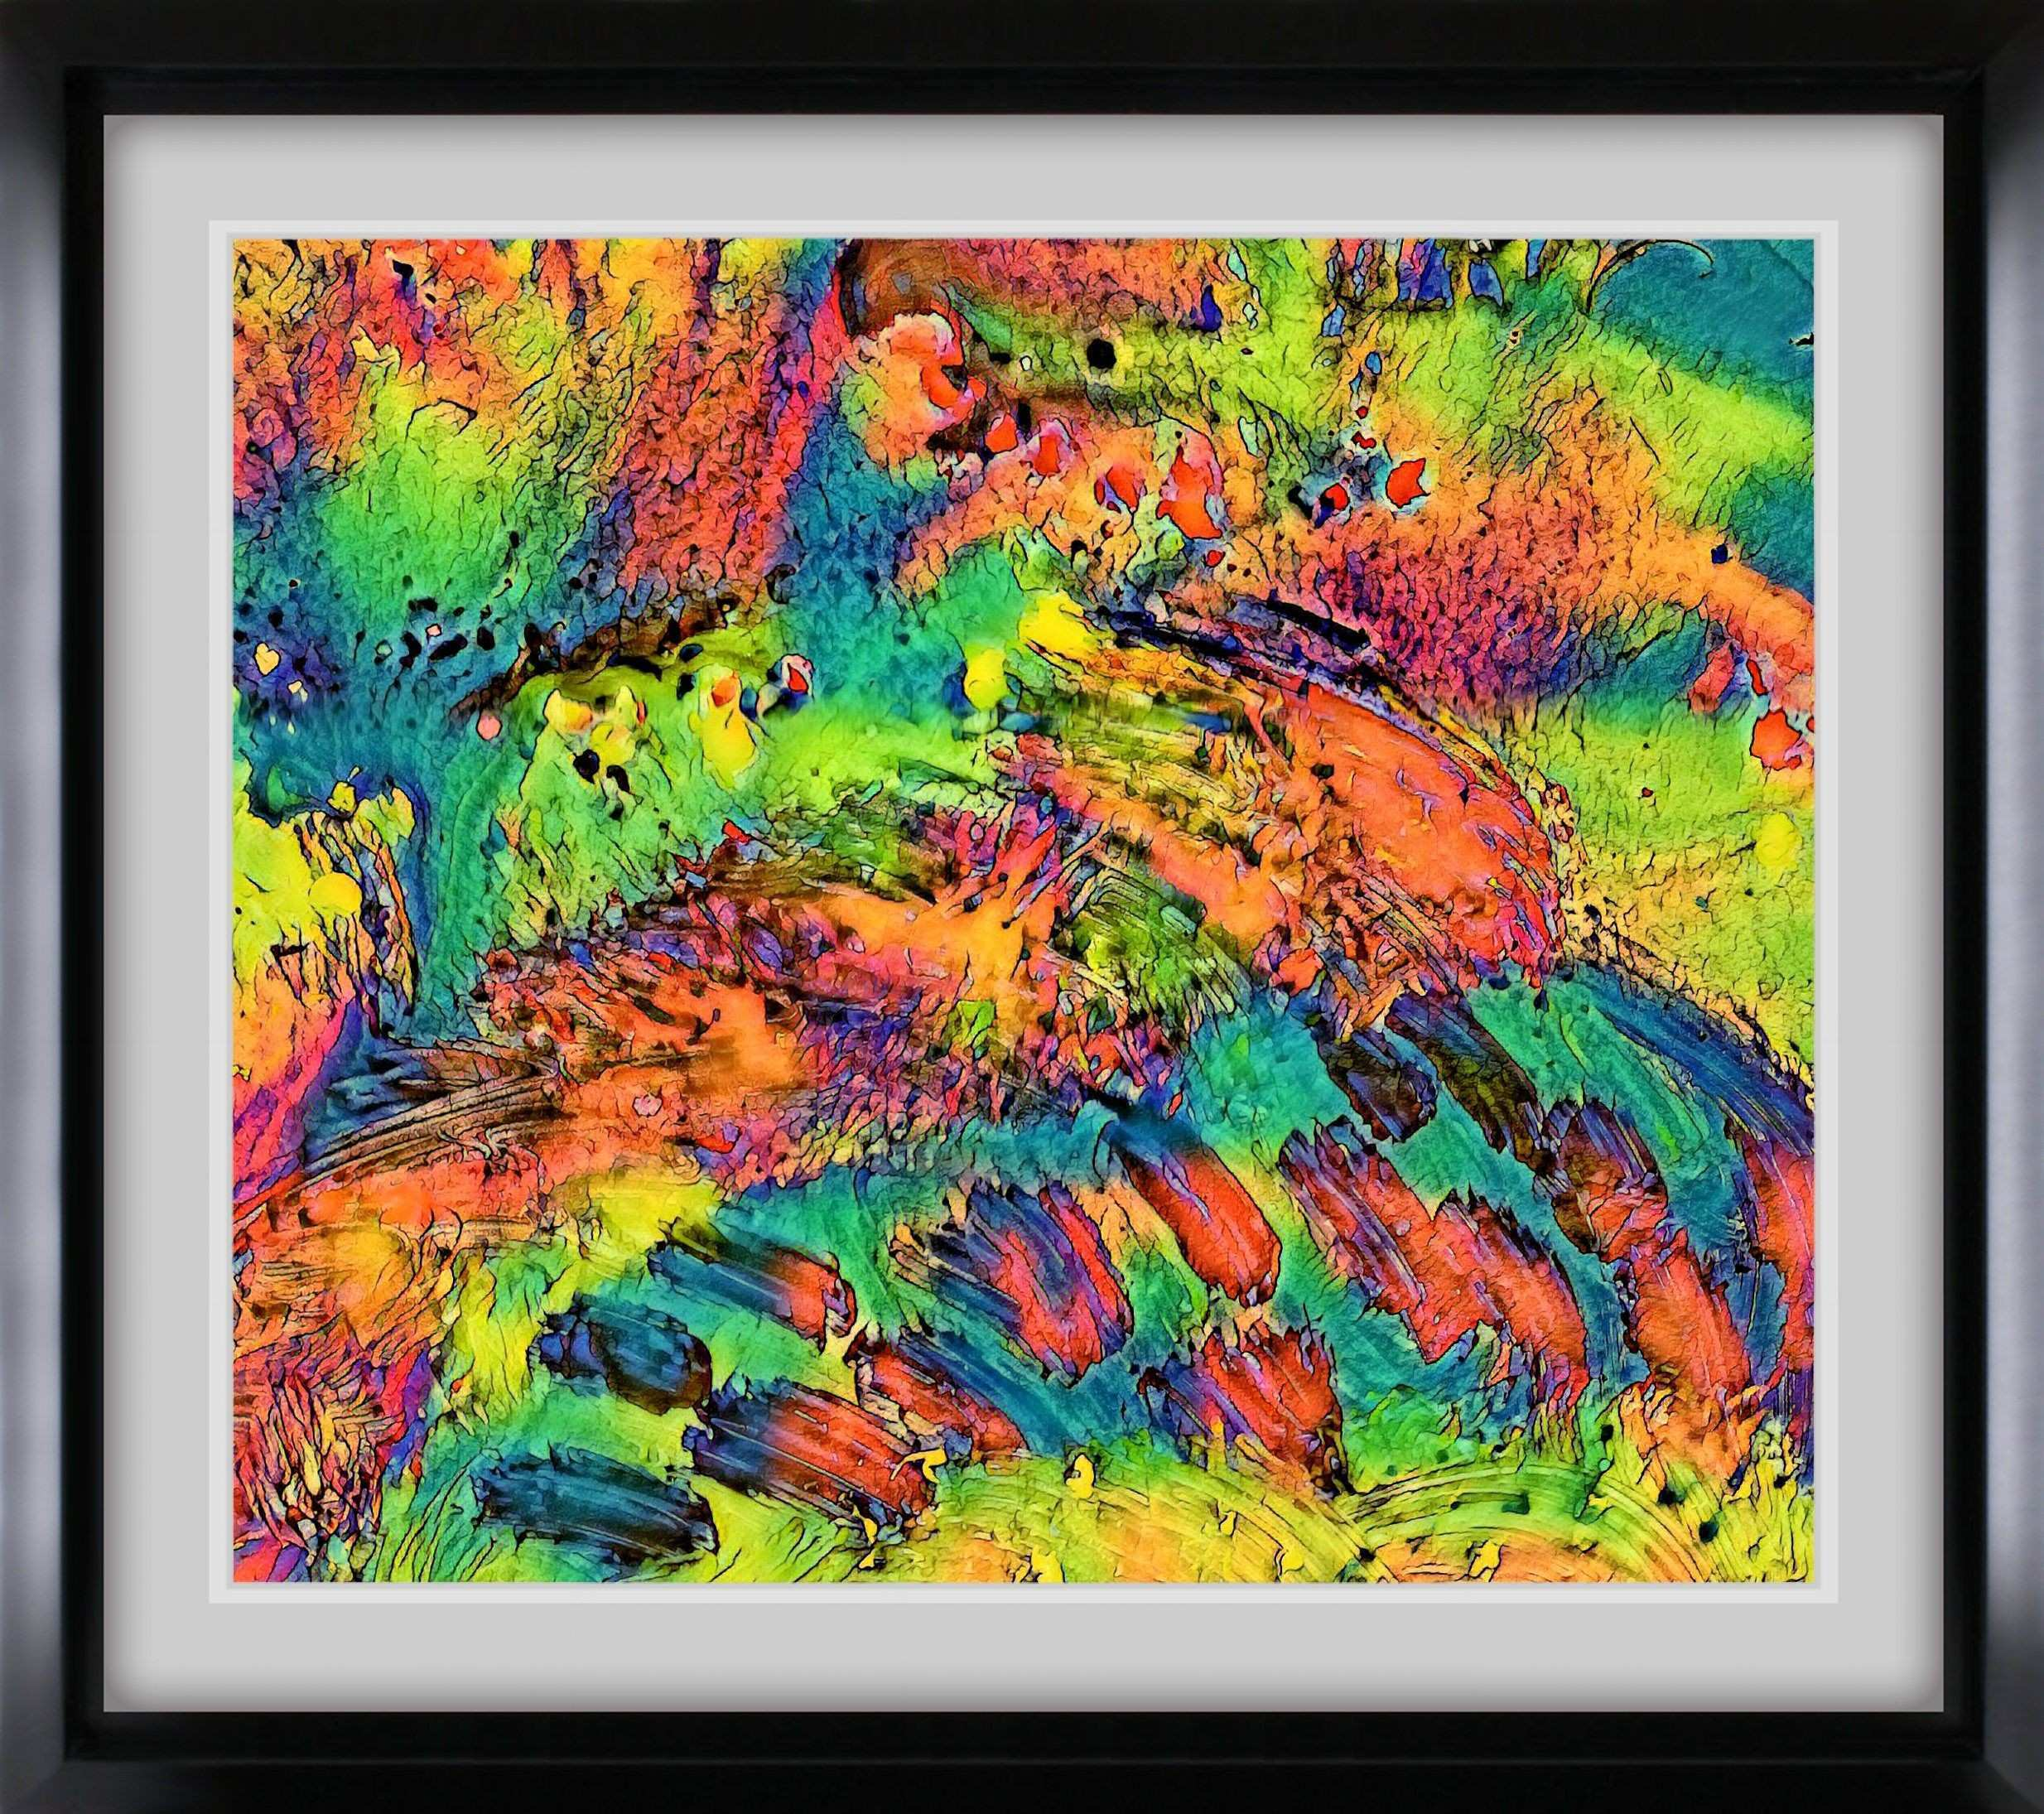 Vibrant Sunset 2 Abstract Expressionism Fine Art Print by